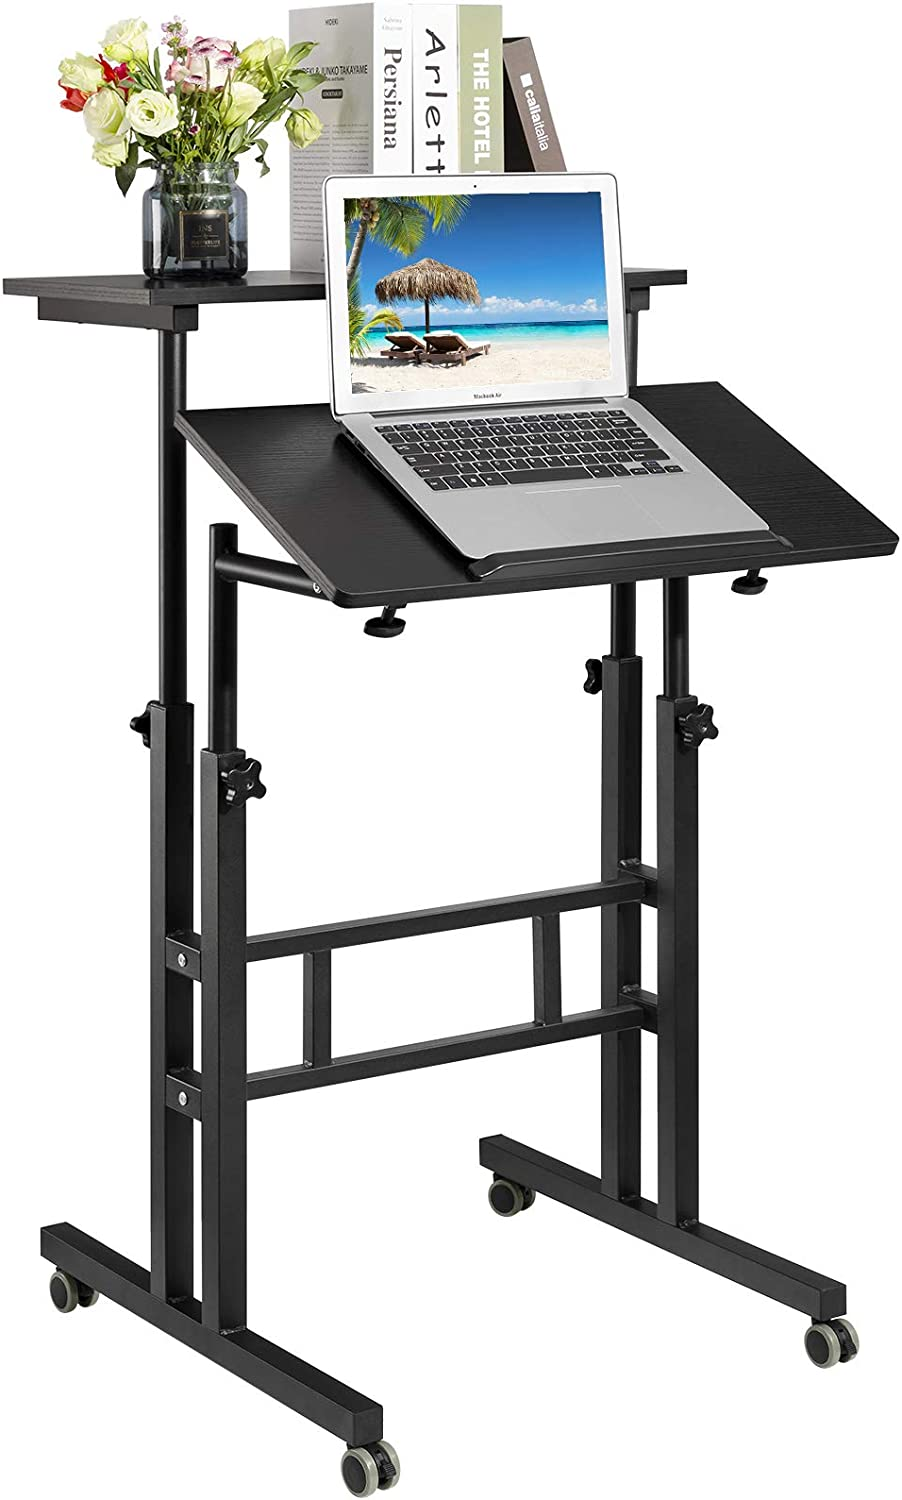 Hadulcet Mobile Standing Desk, Adjustable Standing Computer Desk, Standing Adjustable Laptop Cart with Wheels for Home Office Classroom, 23.62 x 23.6 in, Black